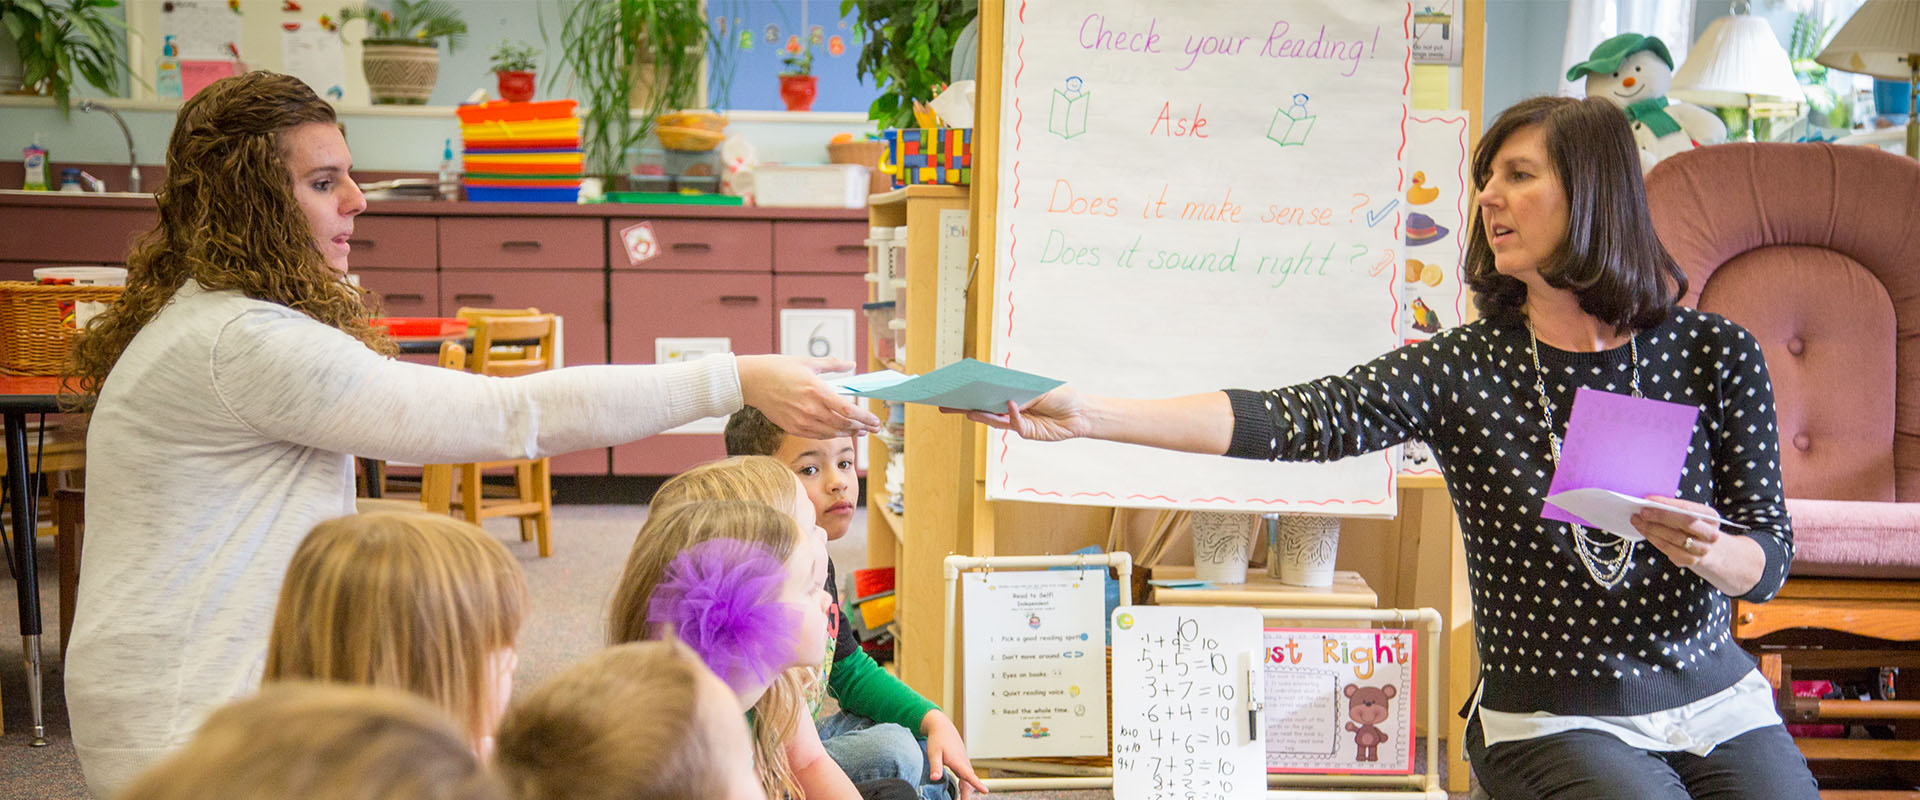 Elementary Education <i>with Early Childhood Education minor</i>